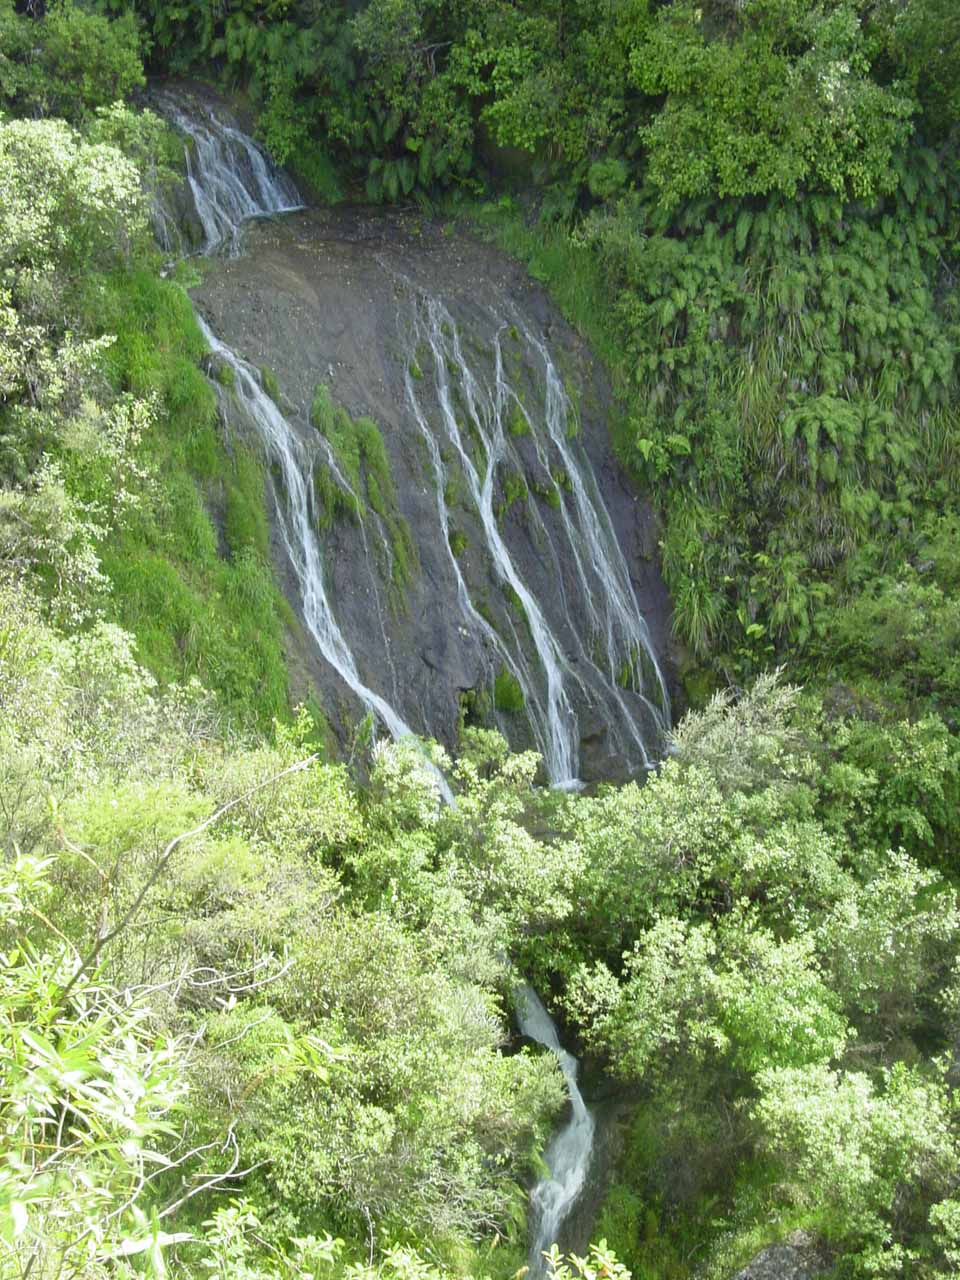 Looking down at the segmented Tangoio Falls